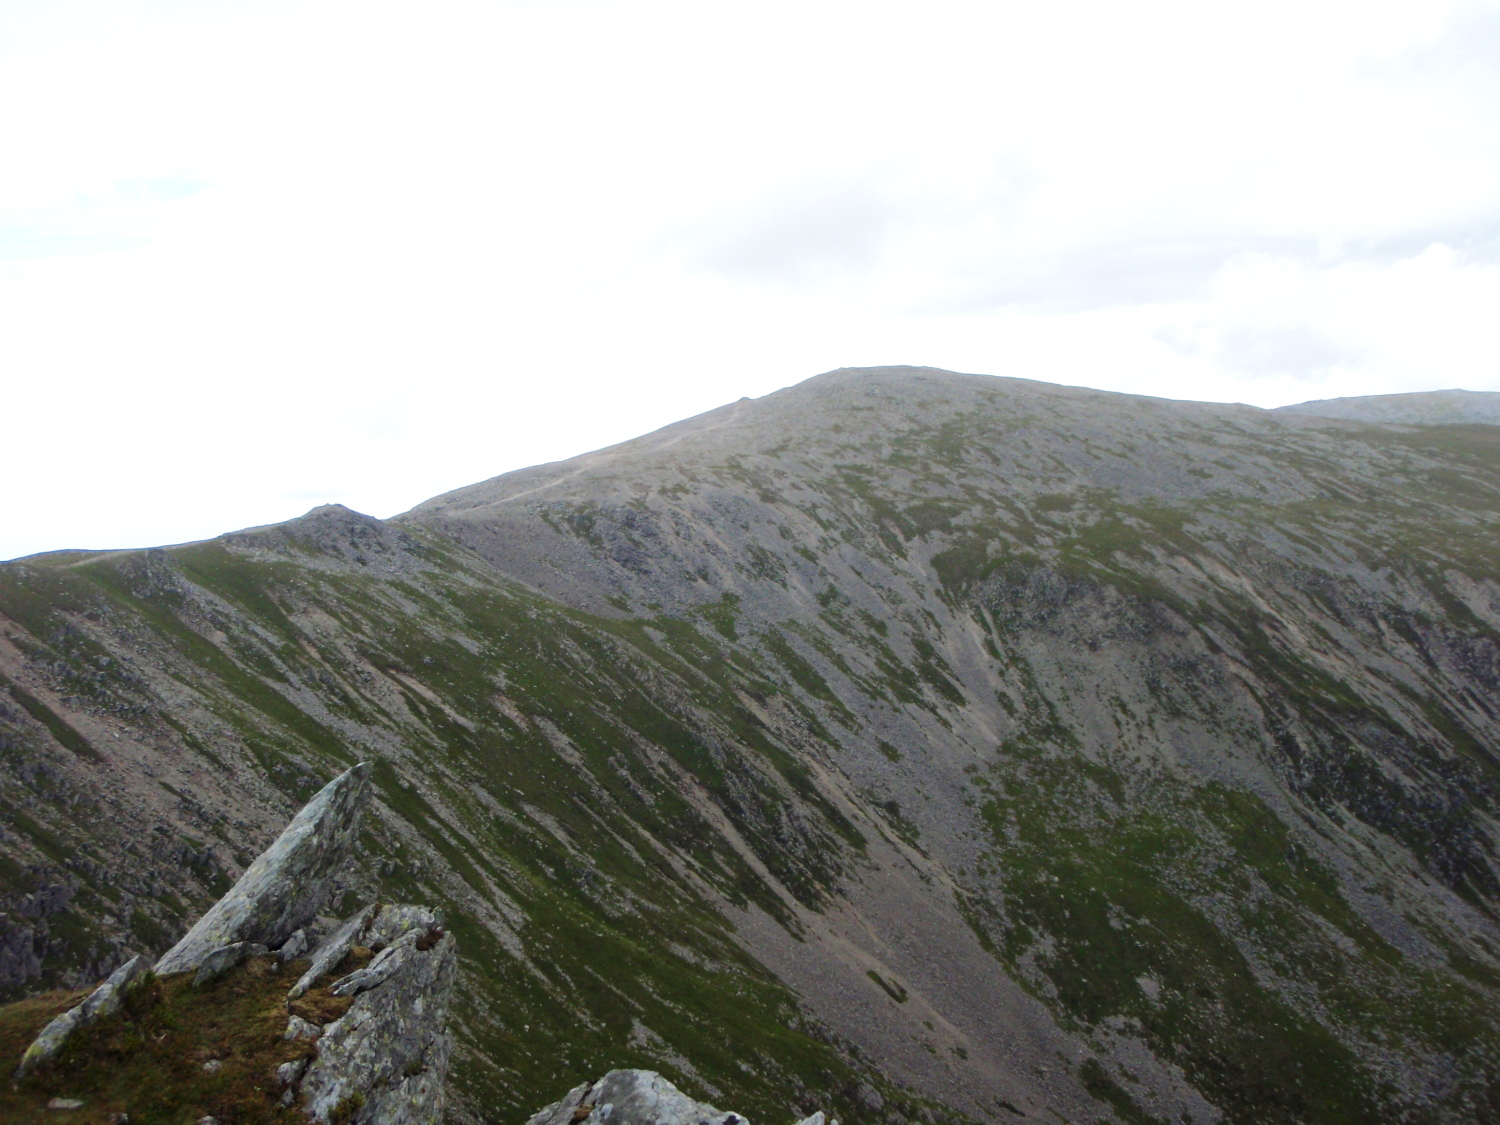 155 The Southern Peaks Of Carneddau North Wales Paul Caigcircuitwriterpen Click Image To See Larger View Carnedd Dafydd From Pen Yr Ole Wen